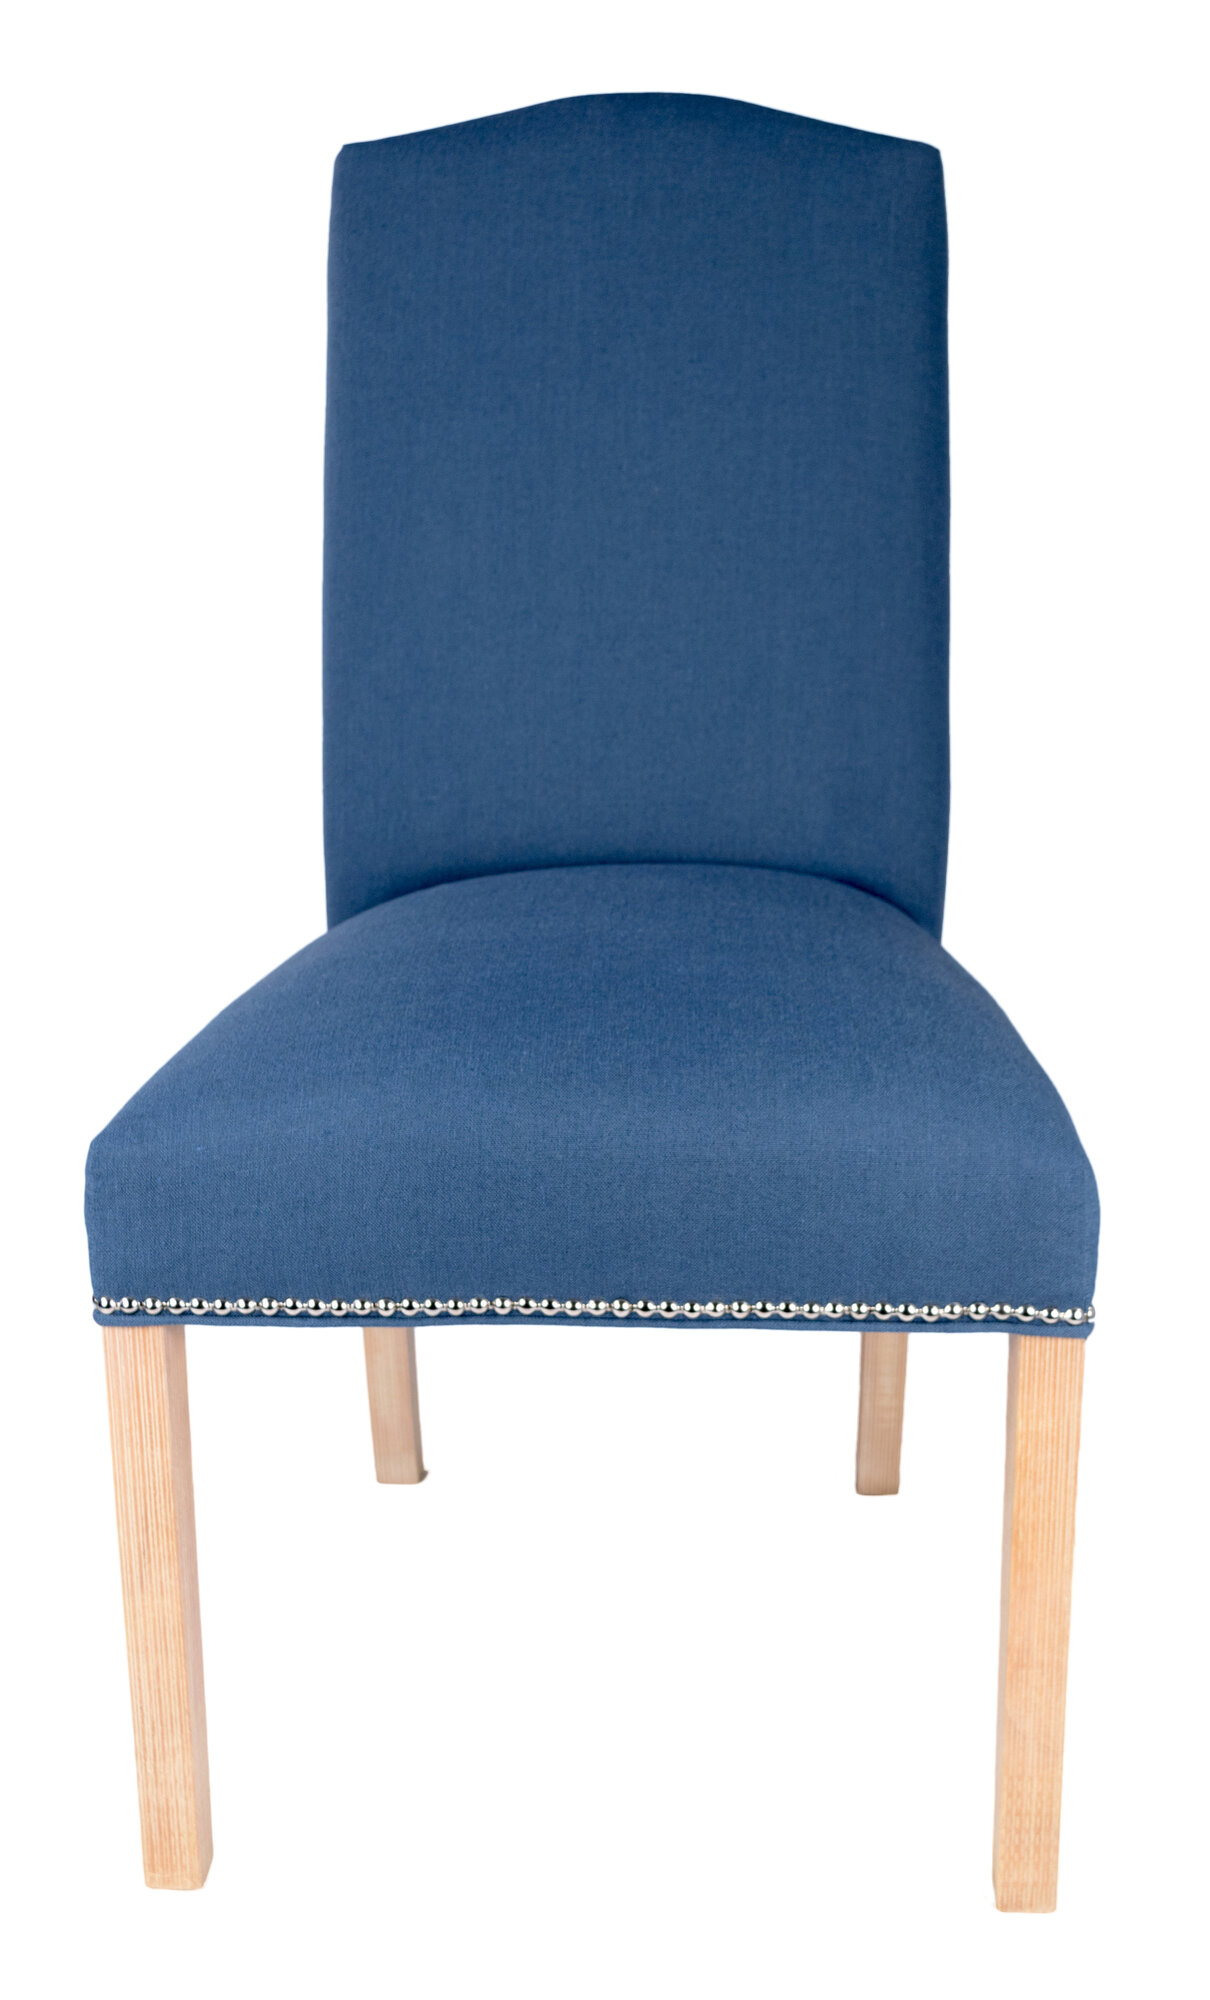 Details About Sole Designs Parsons Upholstered Dining Chair Set Of 2